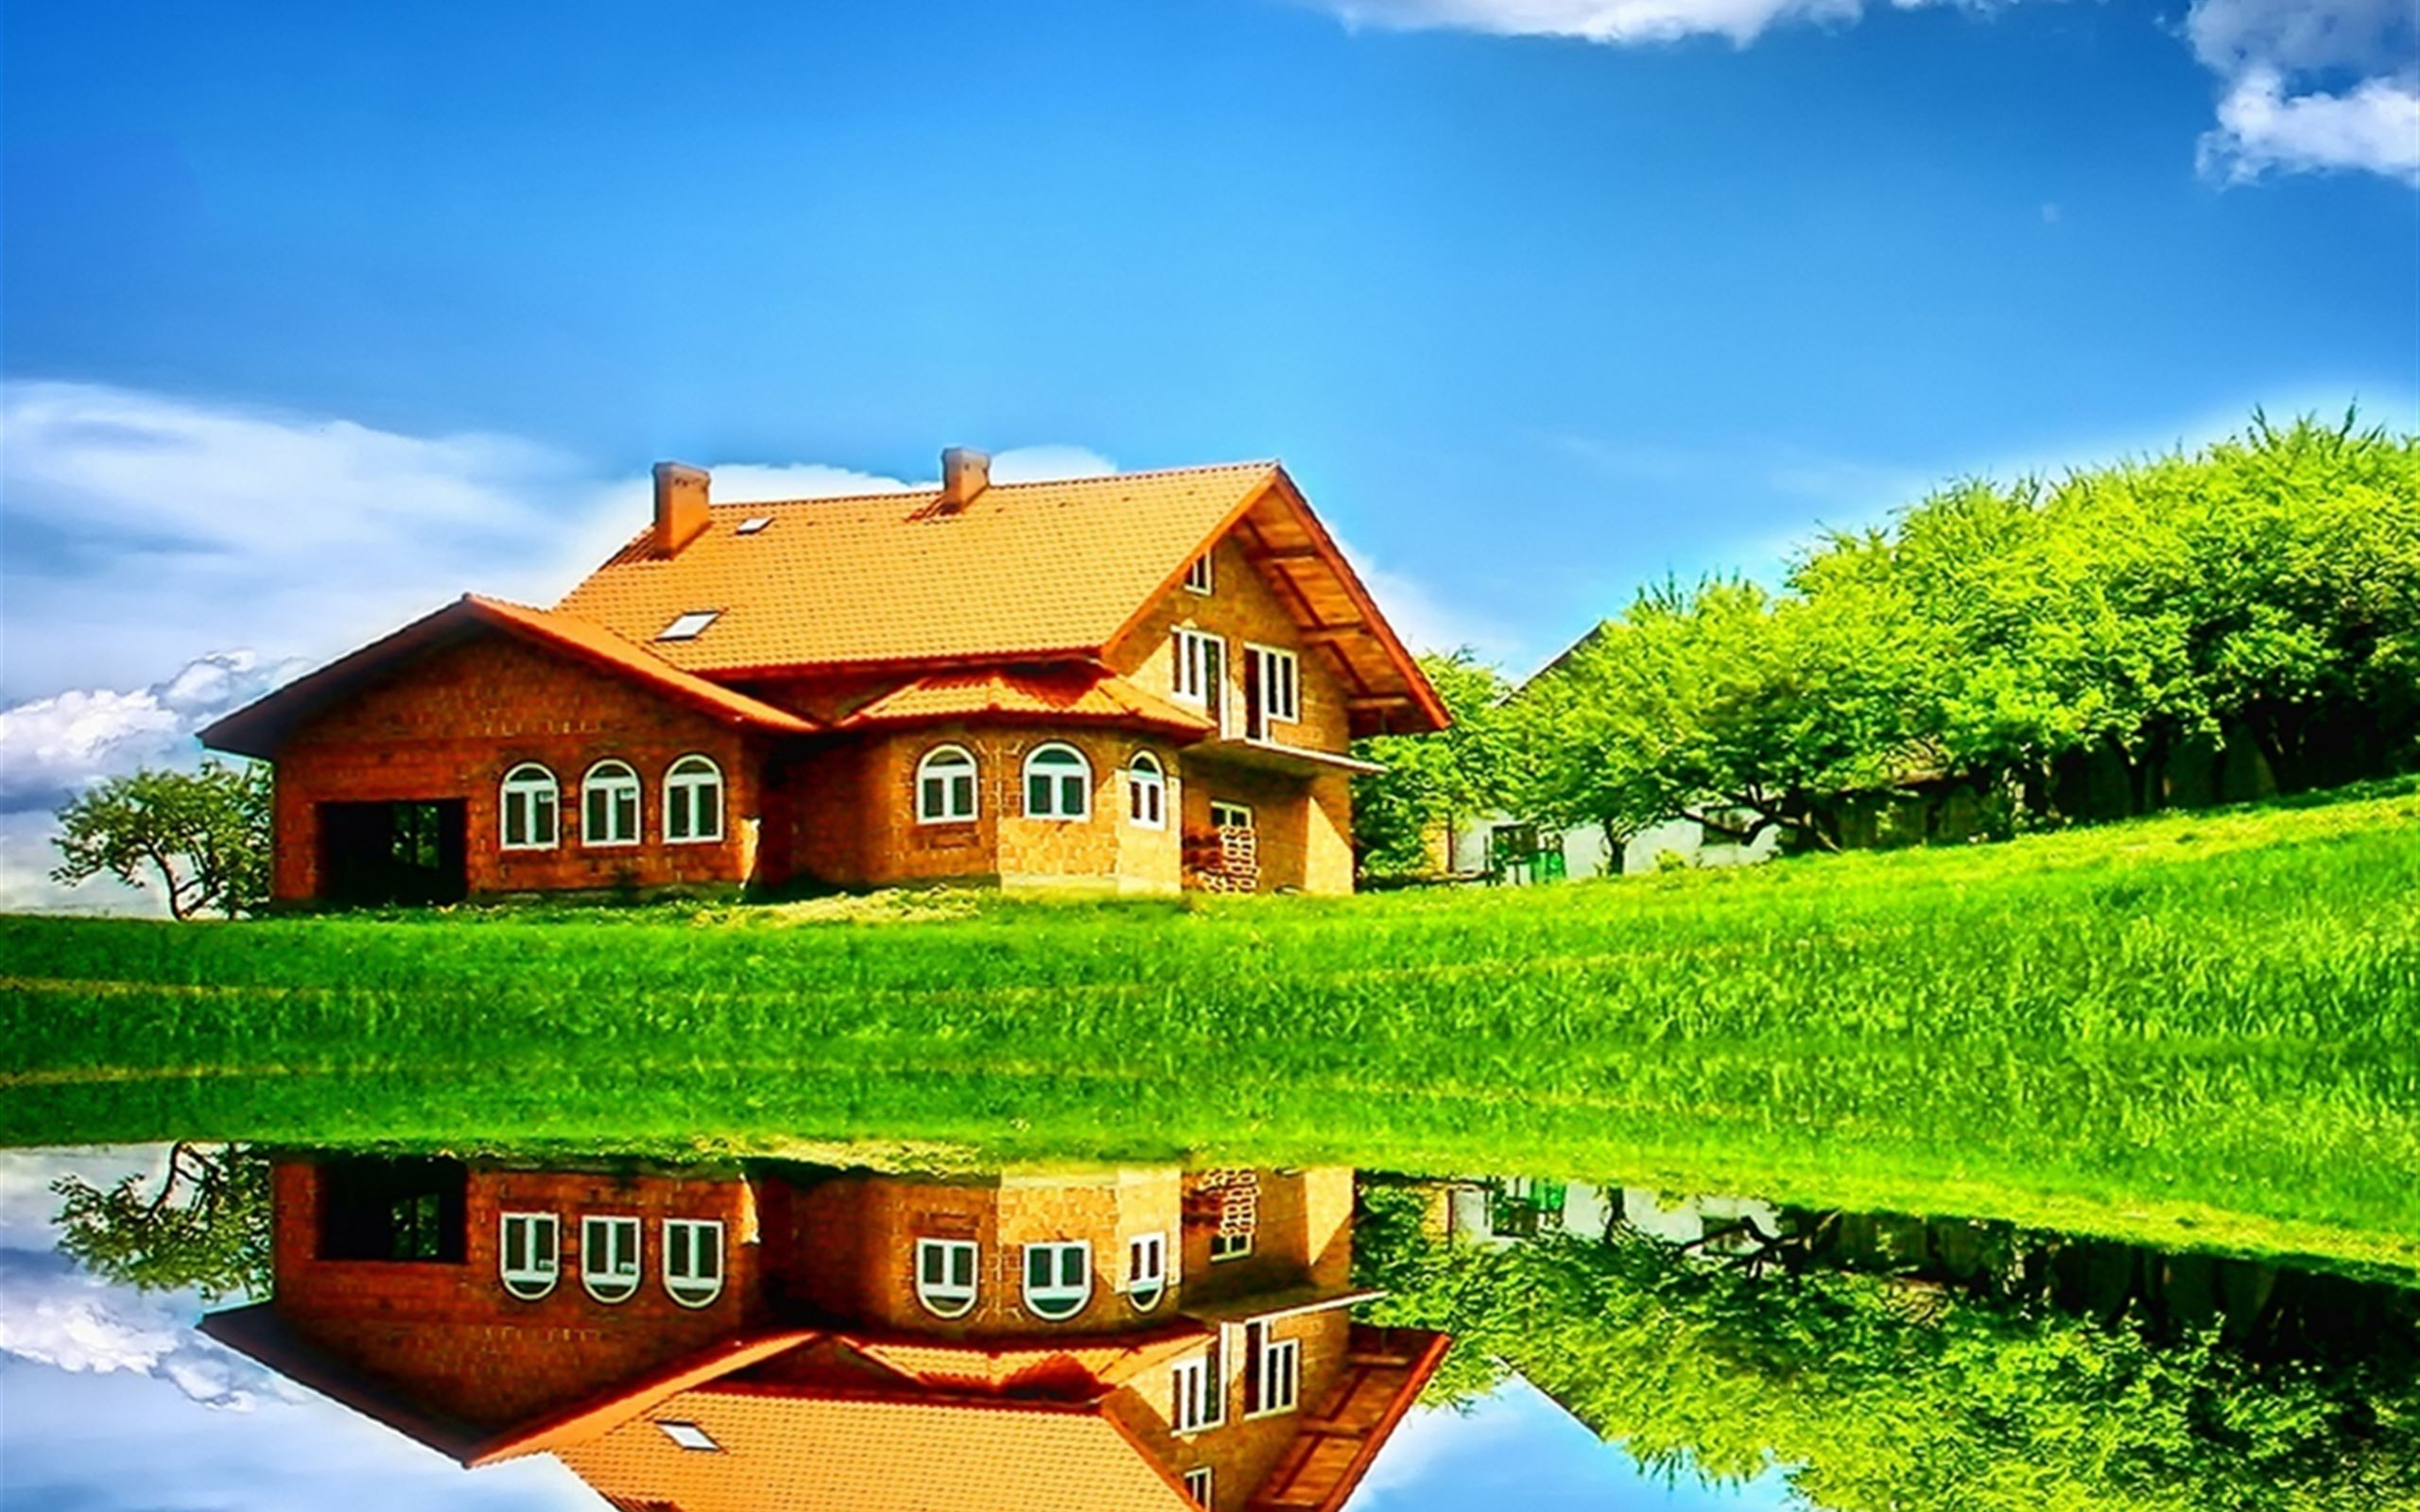 Nature House Reflection Art IPad Wallpaper Download